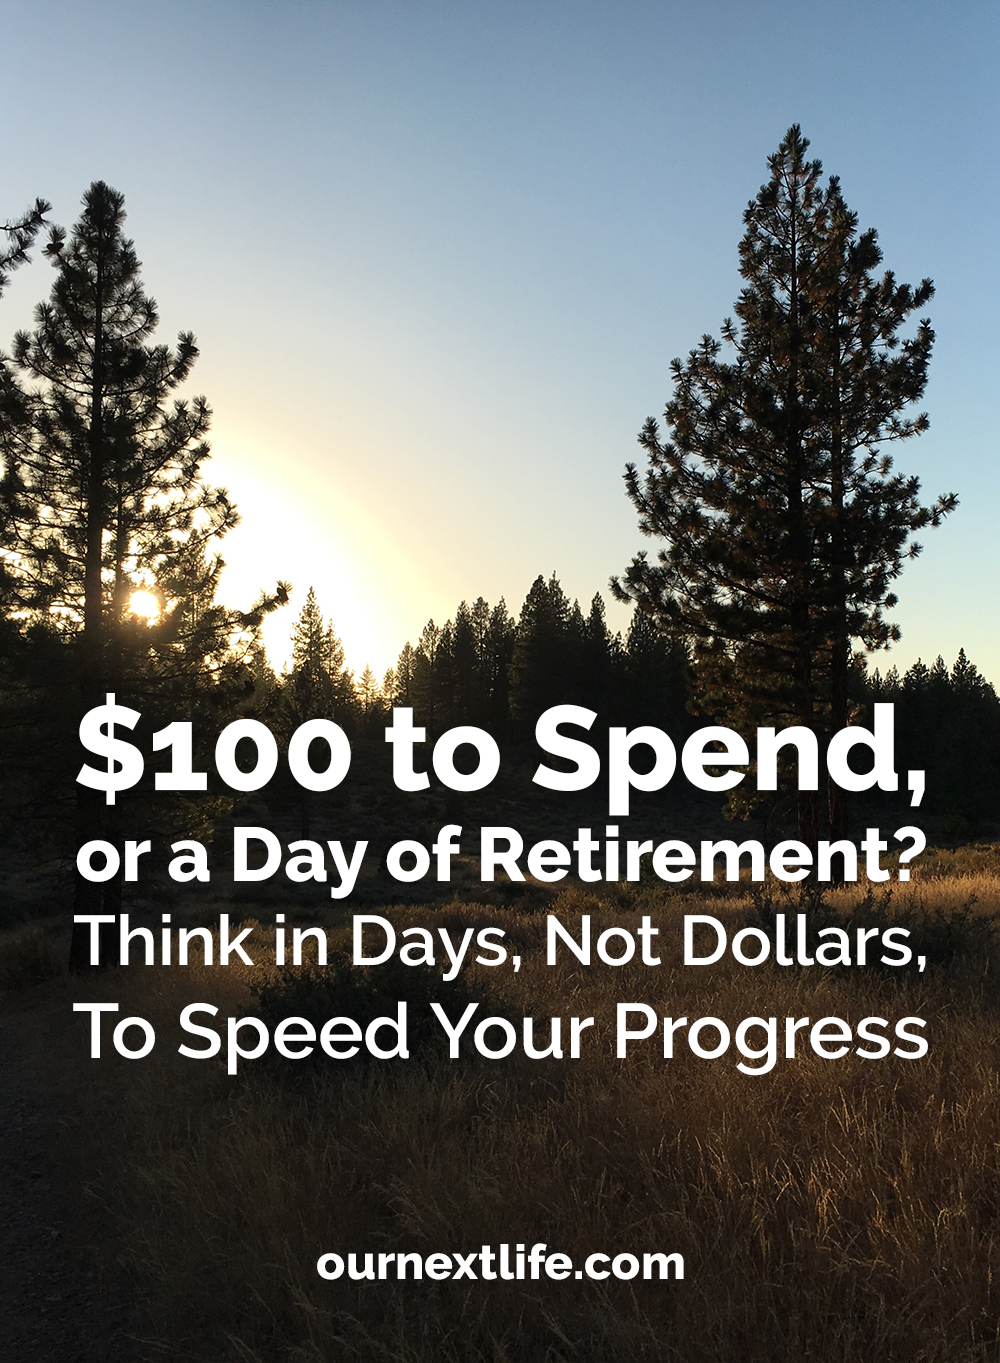 $100 to spend, or a day or retirement? Think in days, not dollars, to speed your progress! // Create a money-time equivalency to simplify your spending decisions and make it easier to say yes to what you truly value, but ruthlessly cut out spending that doesn't add true value to your life.